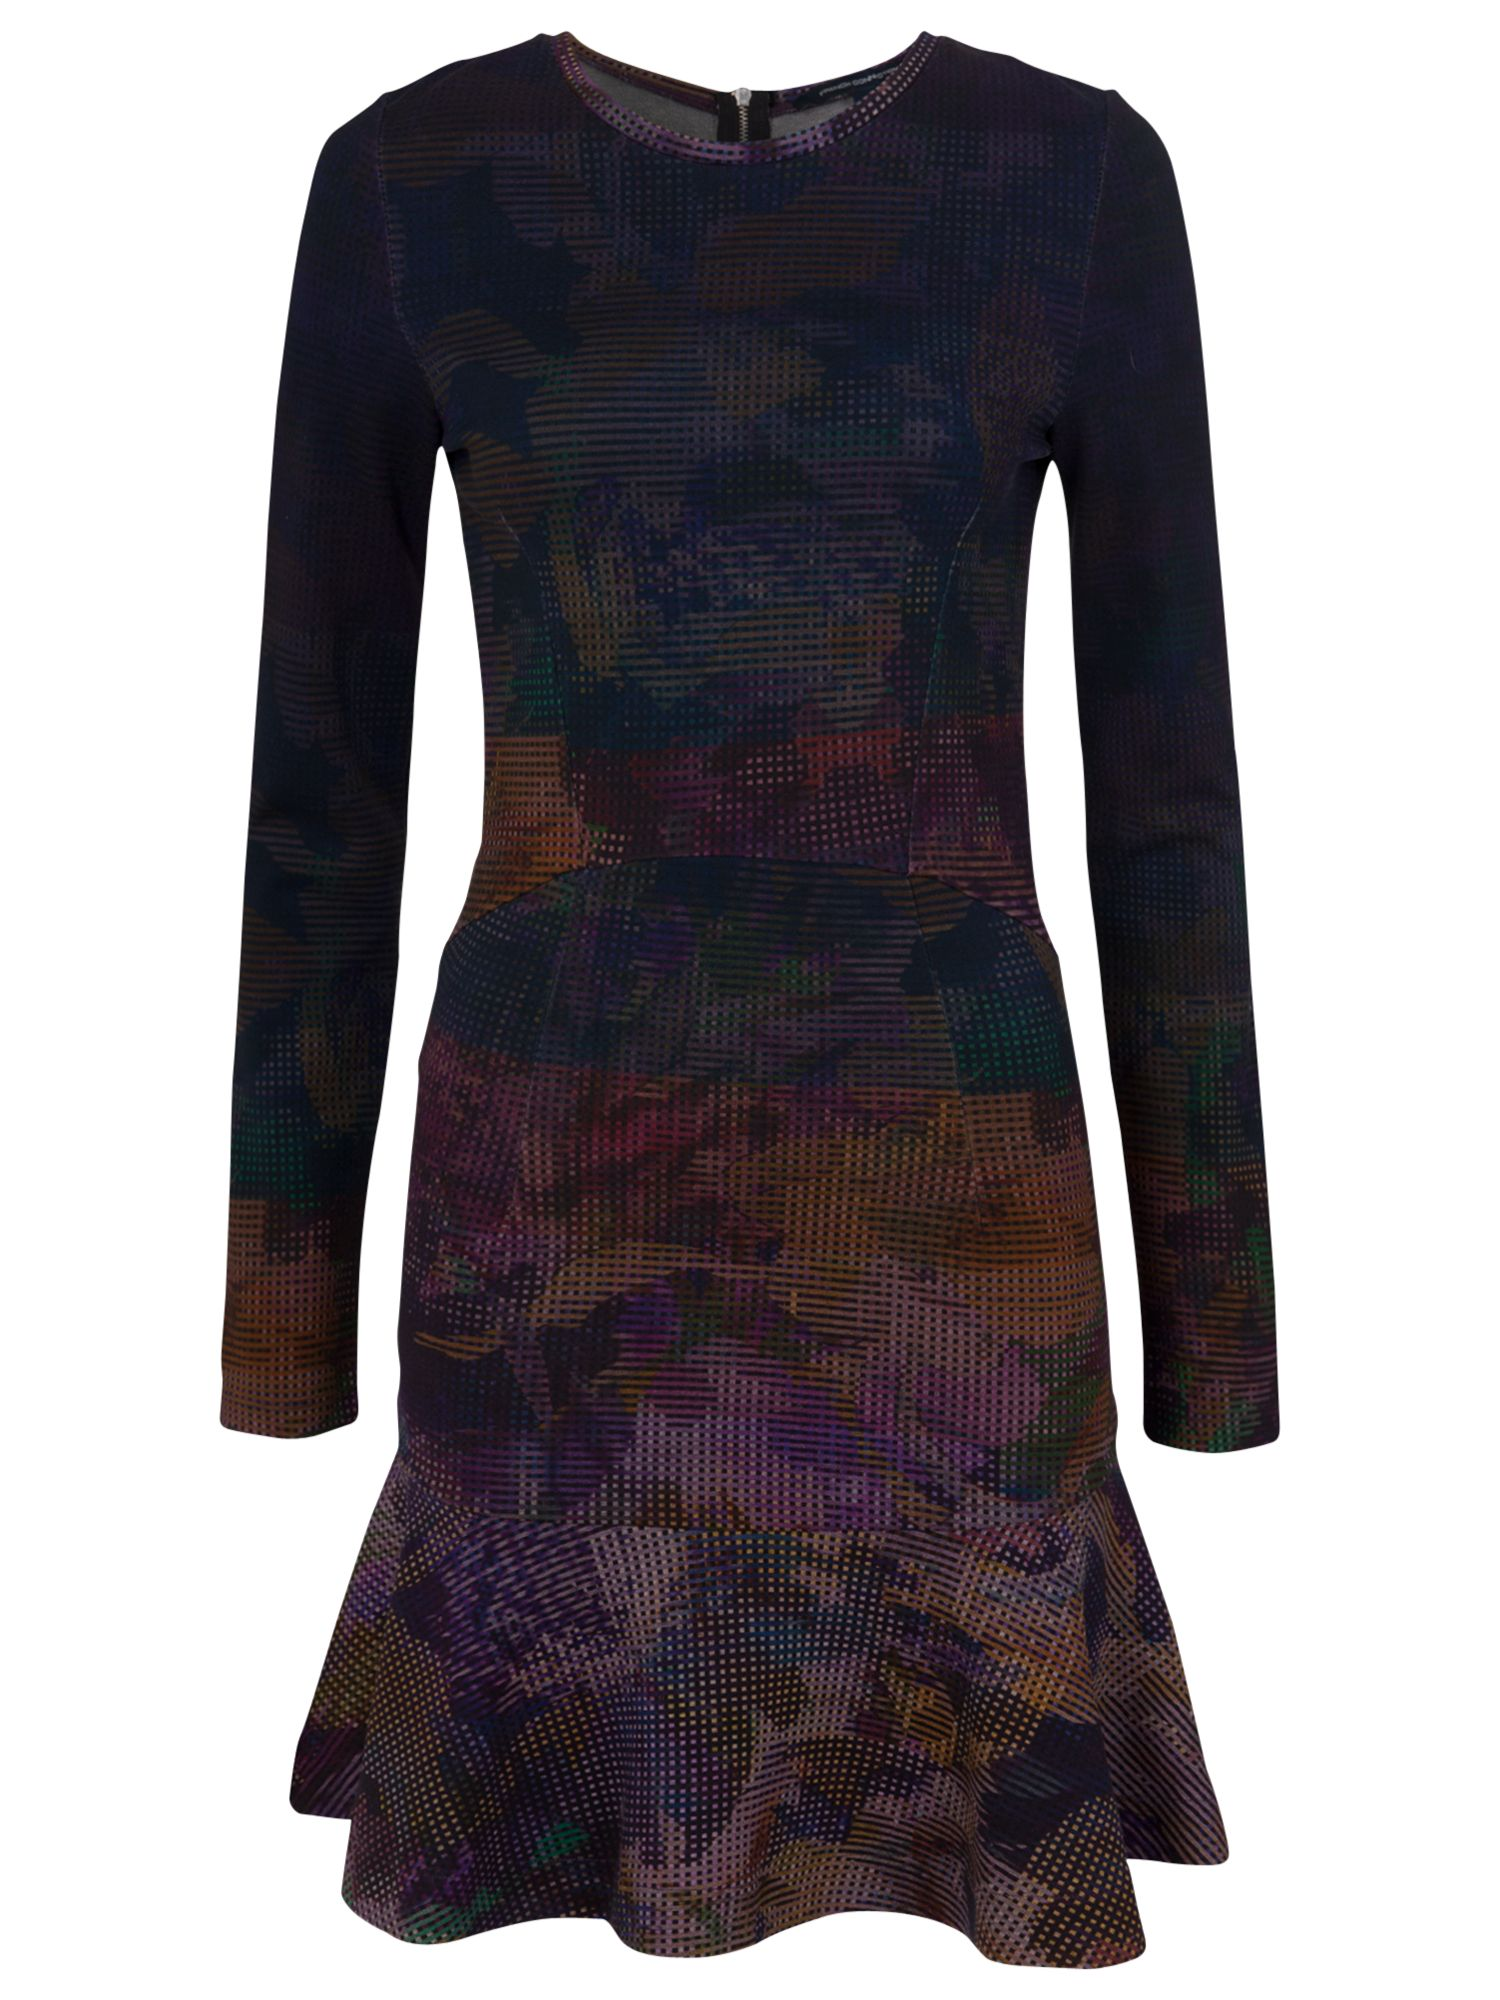 french connection ombre orchard dress dark multi, french, connection, ombre, orchard, dress, dark, multi, french connection, 16|12|10|14|6, clearance, womenswear offers, womens dresses offers, women, inactive womenswear, new reductions, womens dresses, special offers, 1667693